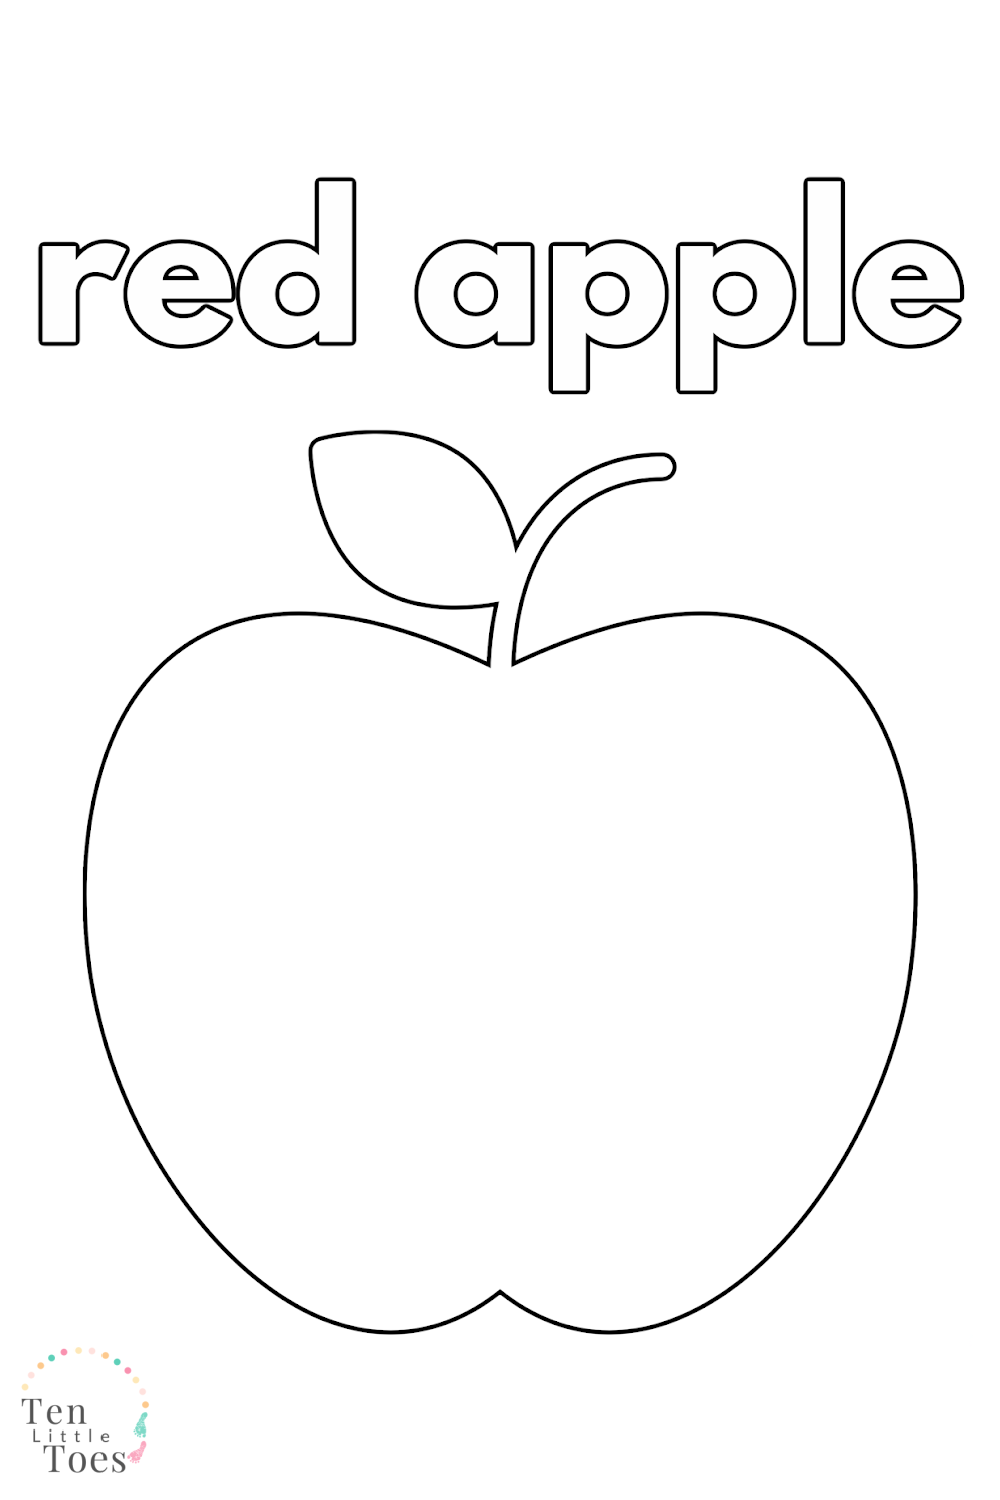 Apple Colouring In Pages Apple Coloring Pages Apple Coloring Toddler Arts And Crafts